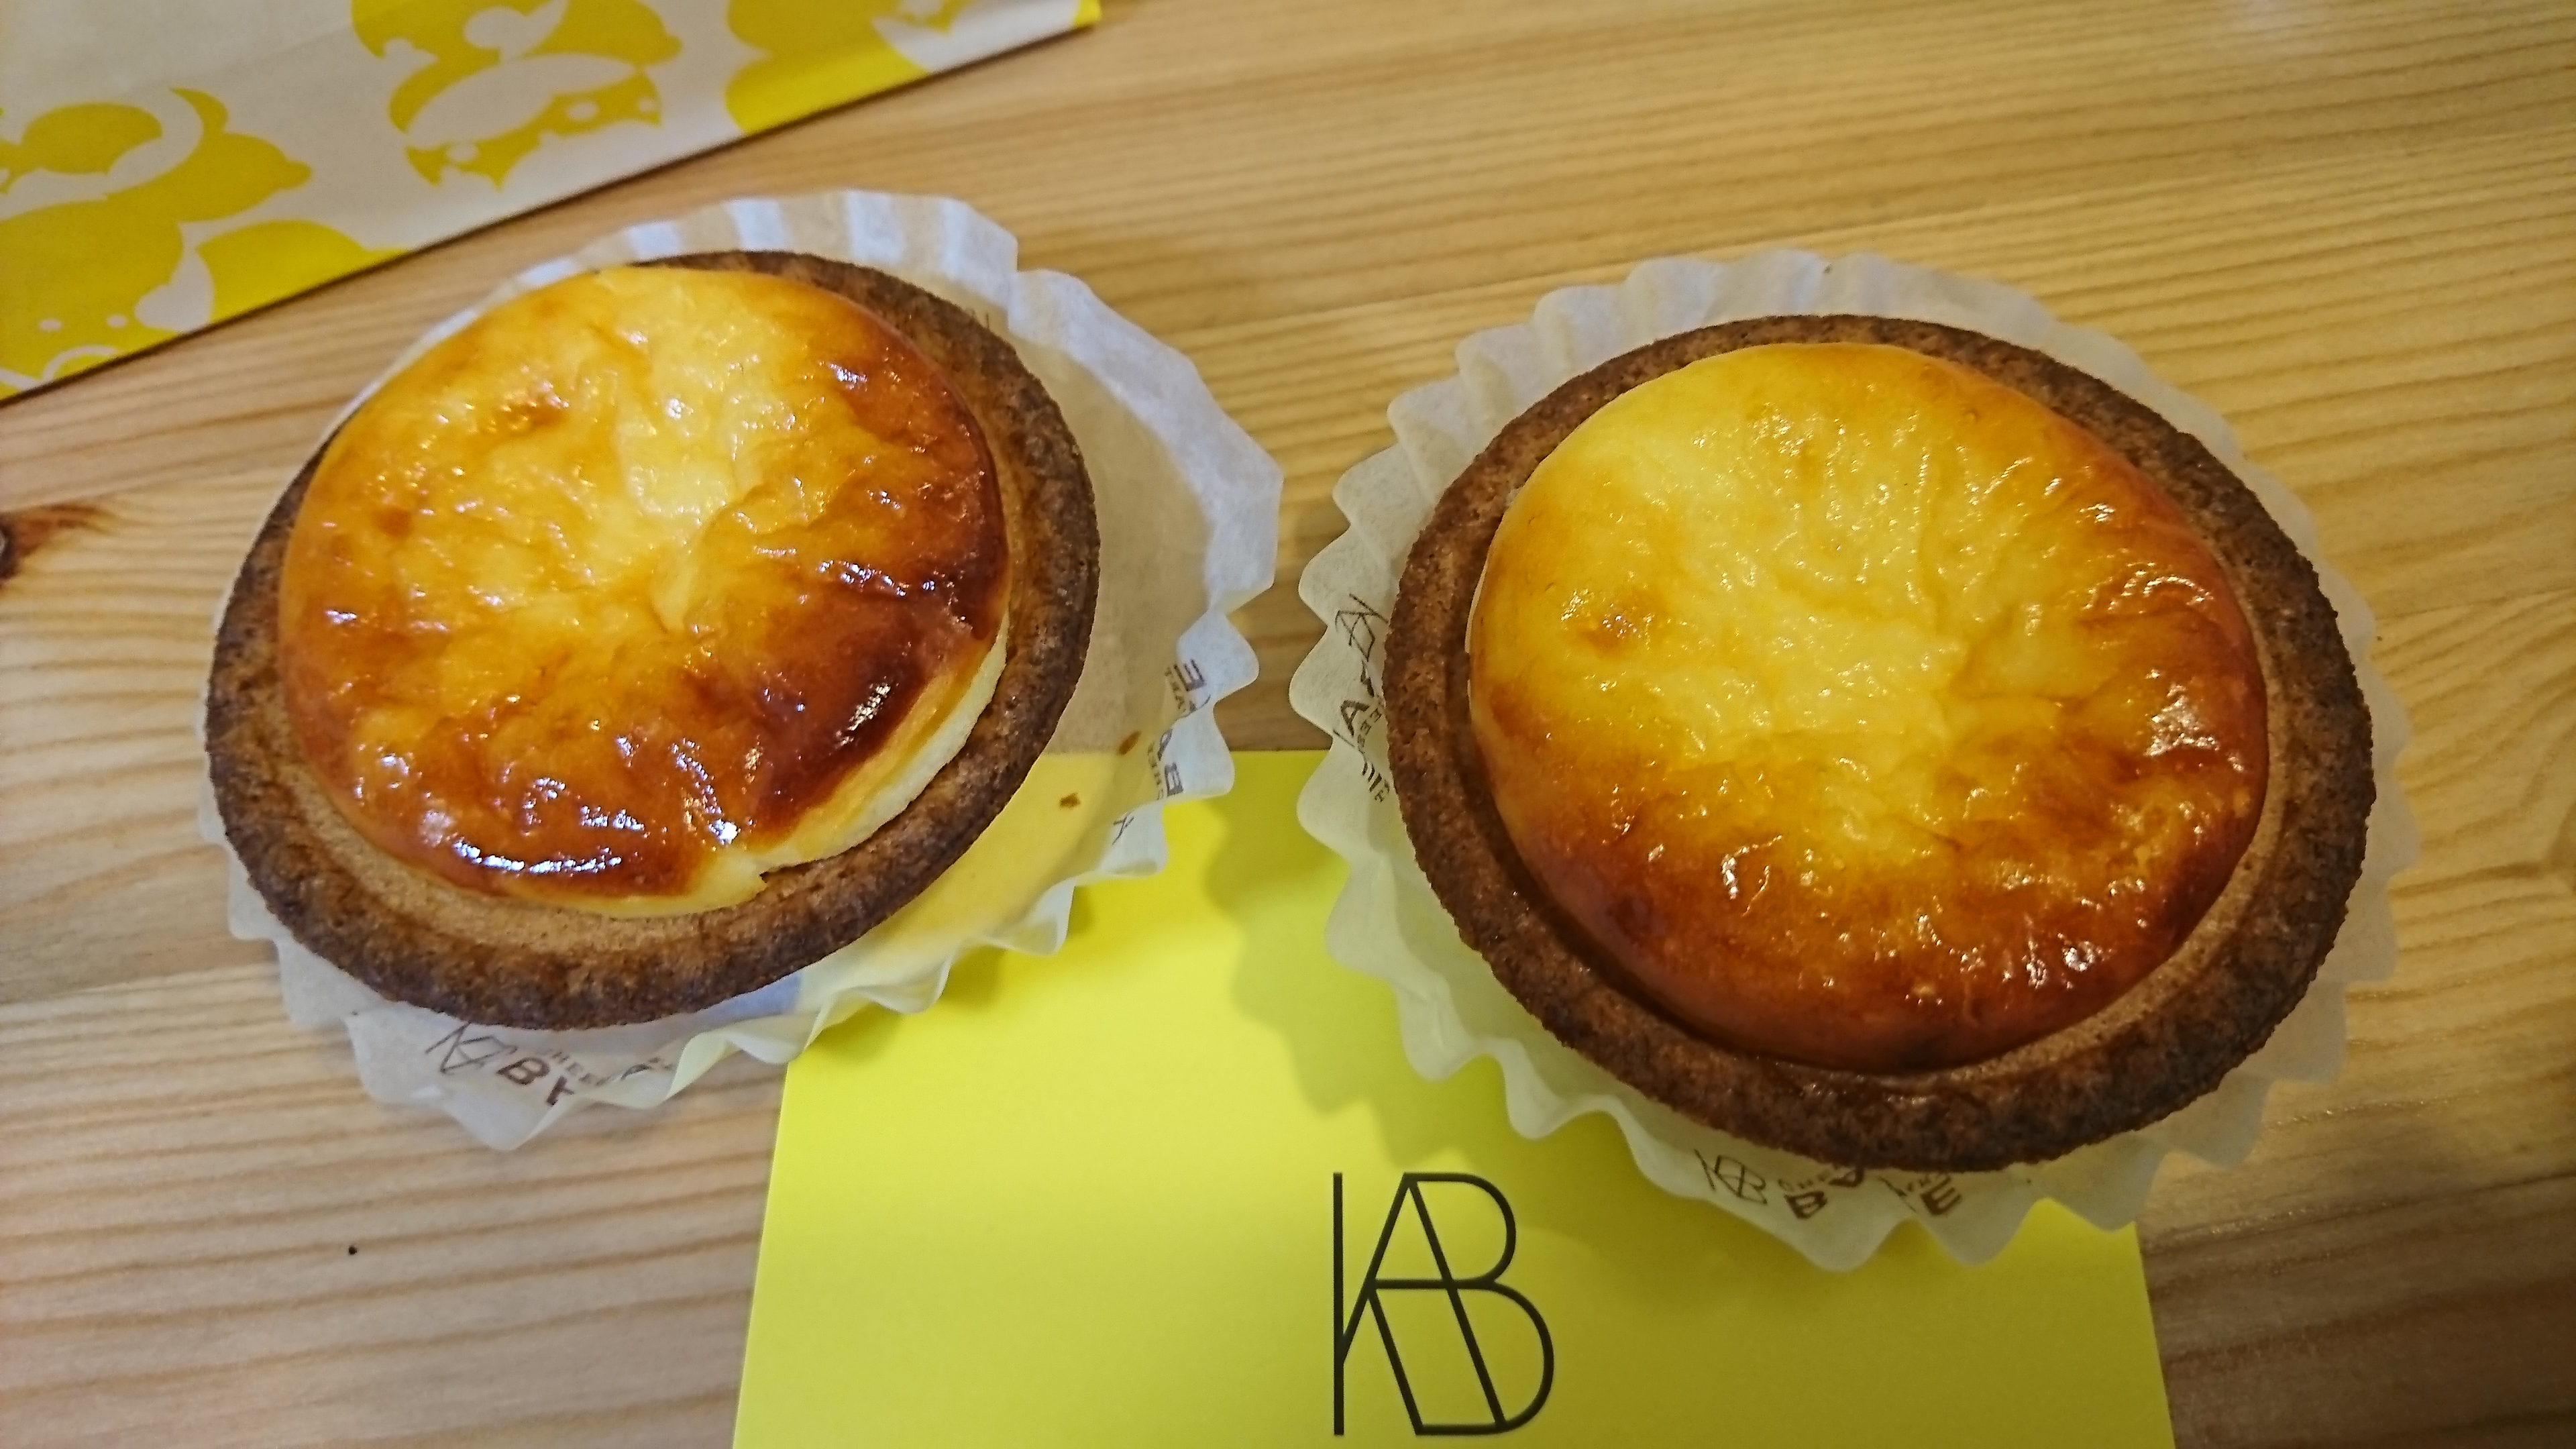 BAKE(cheese talt) in Japan